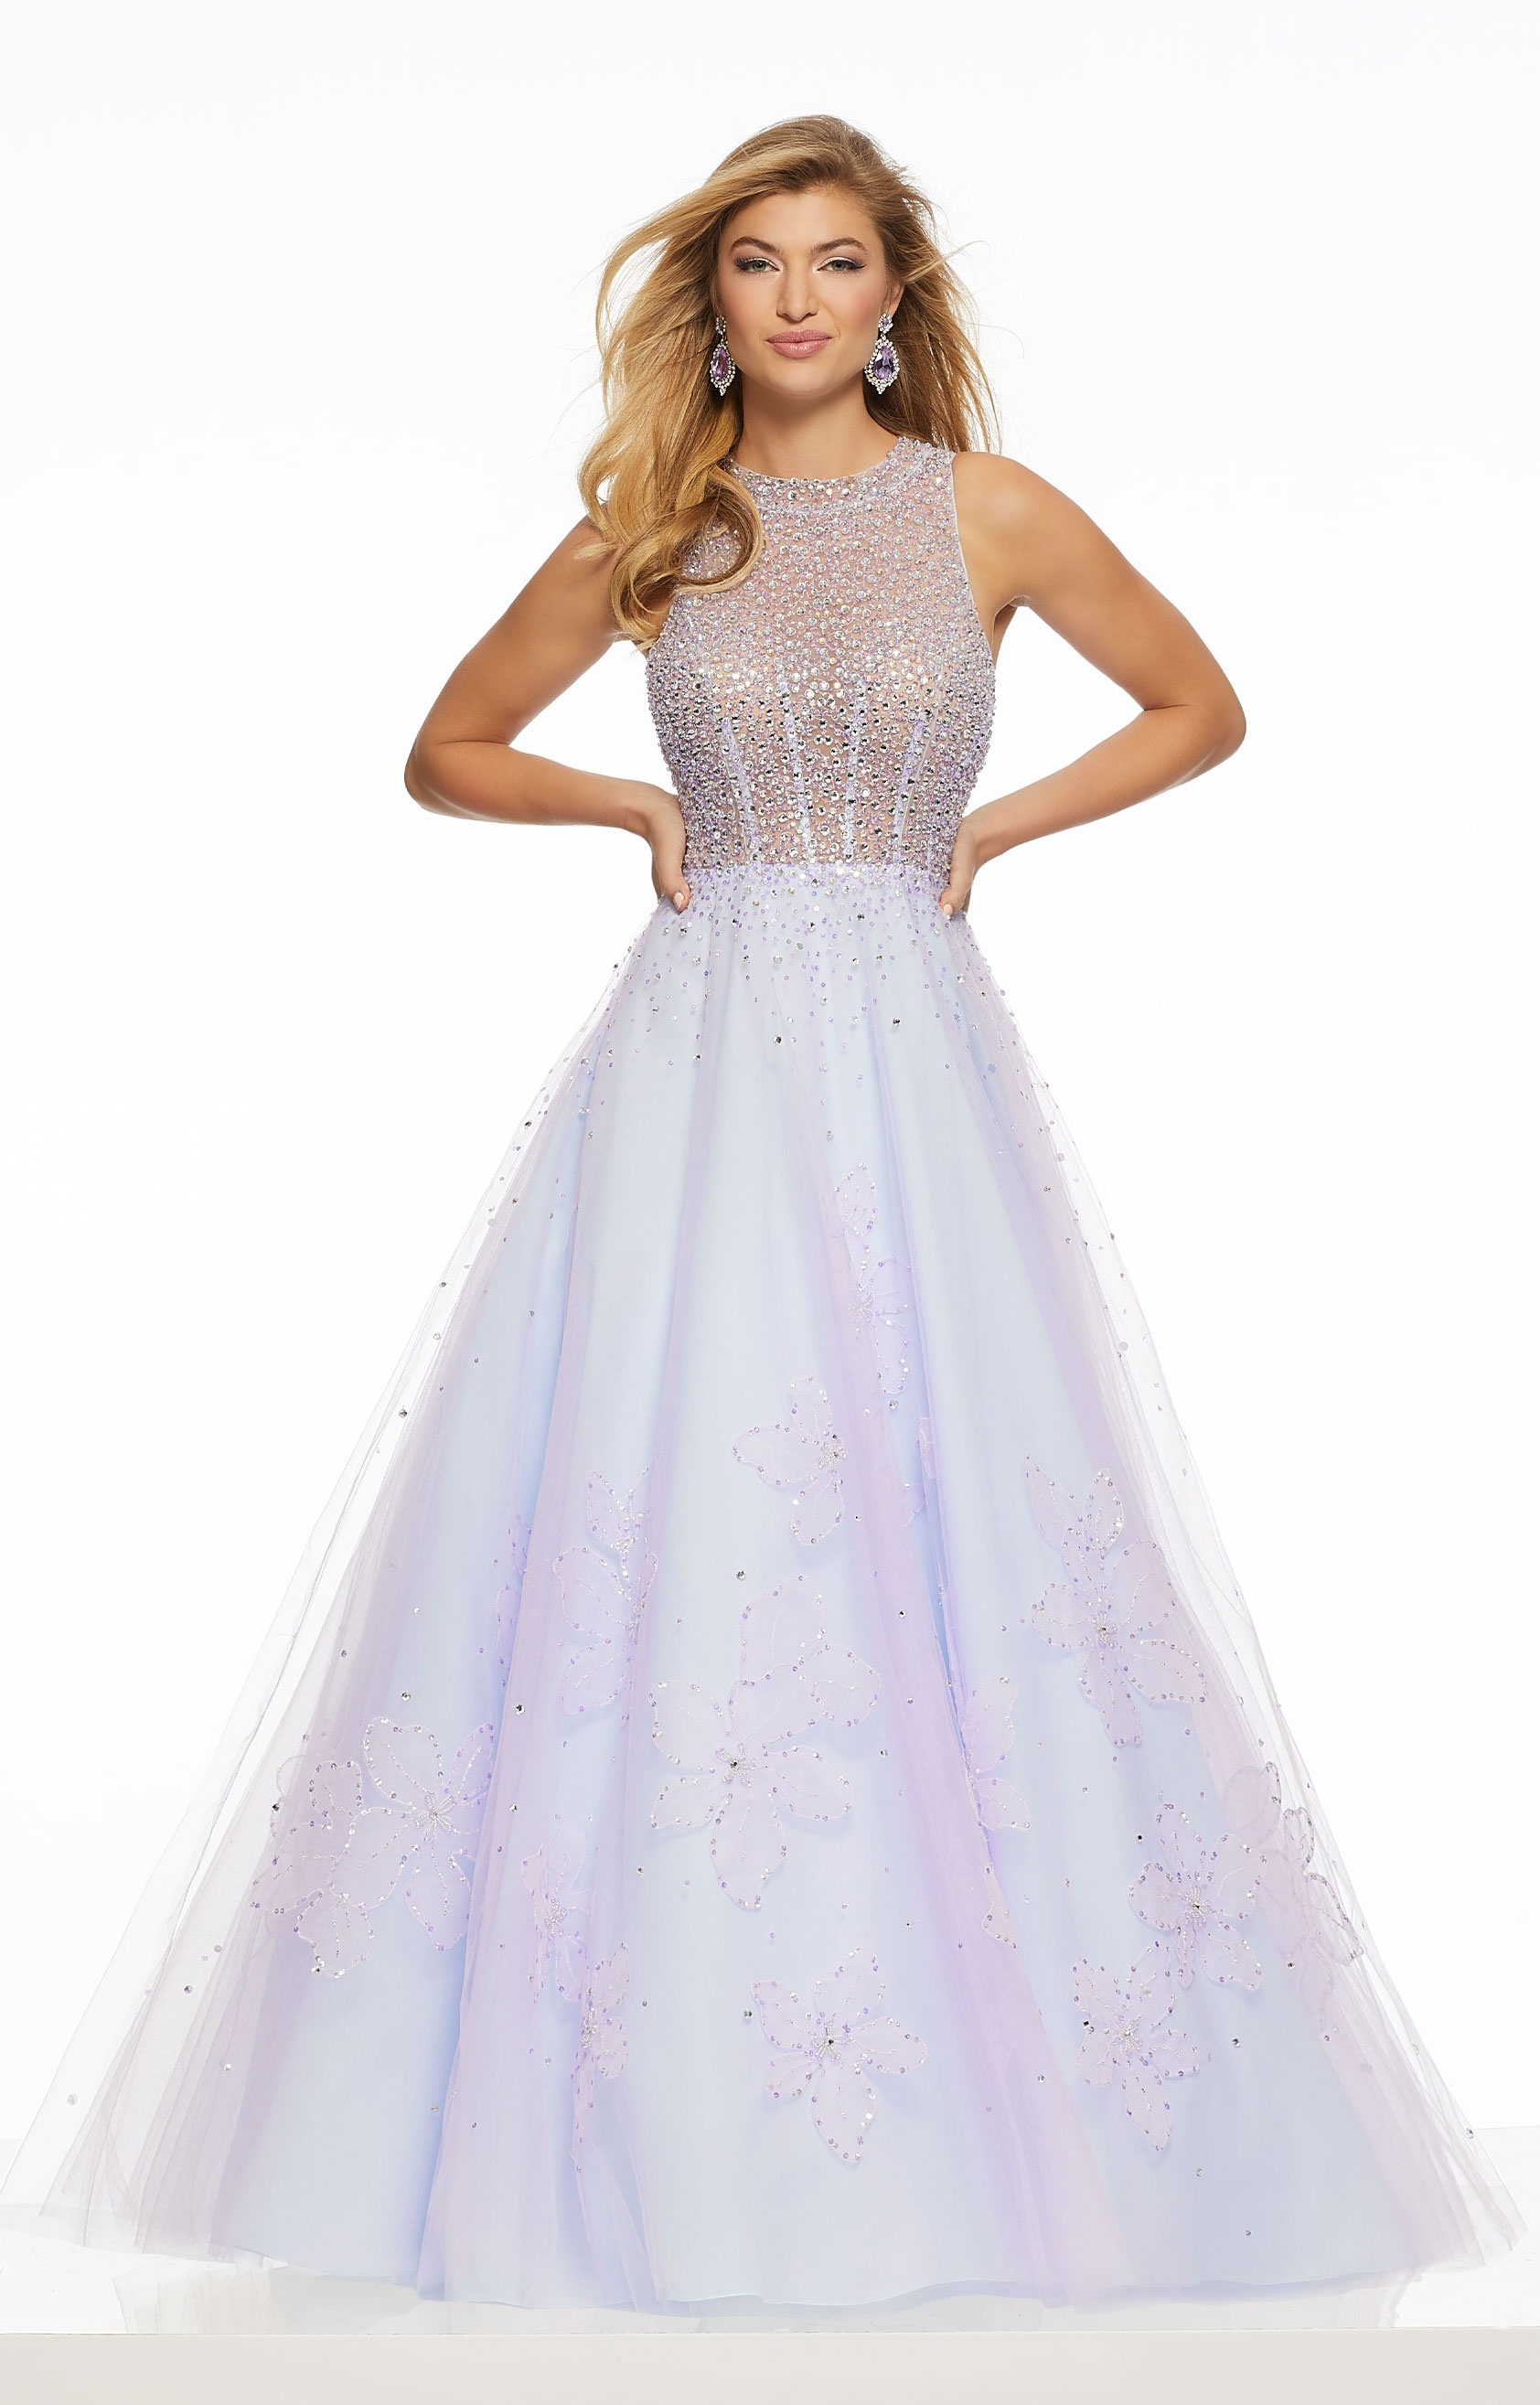 3458da9ad9 Morilee Prom 43079 - Simply Sweet A-Line Tulle Dress